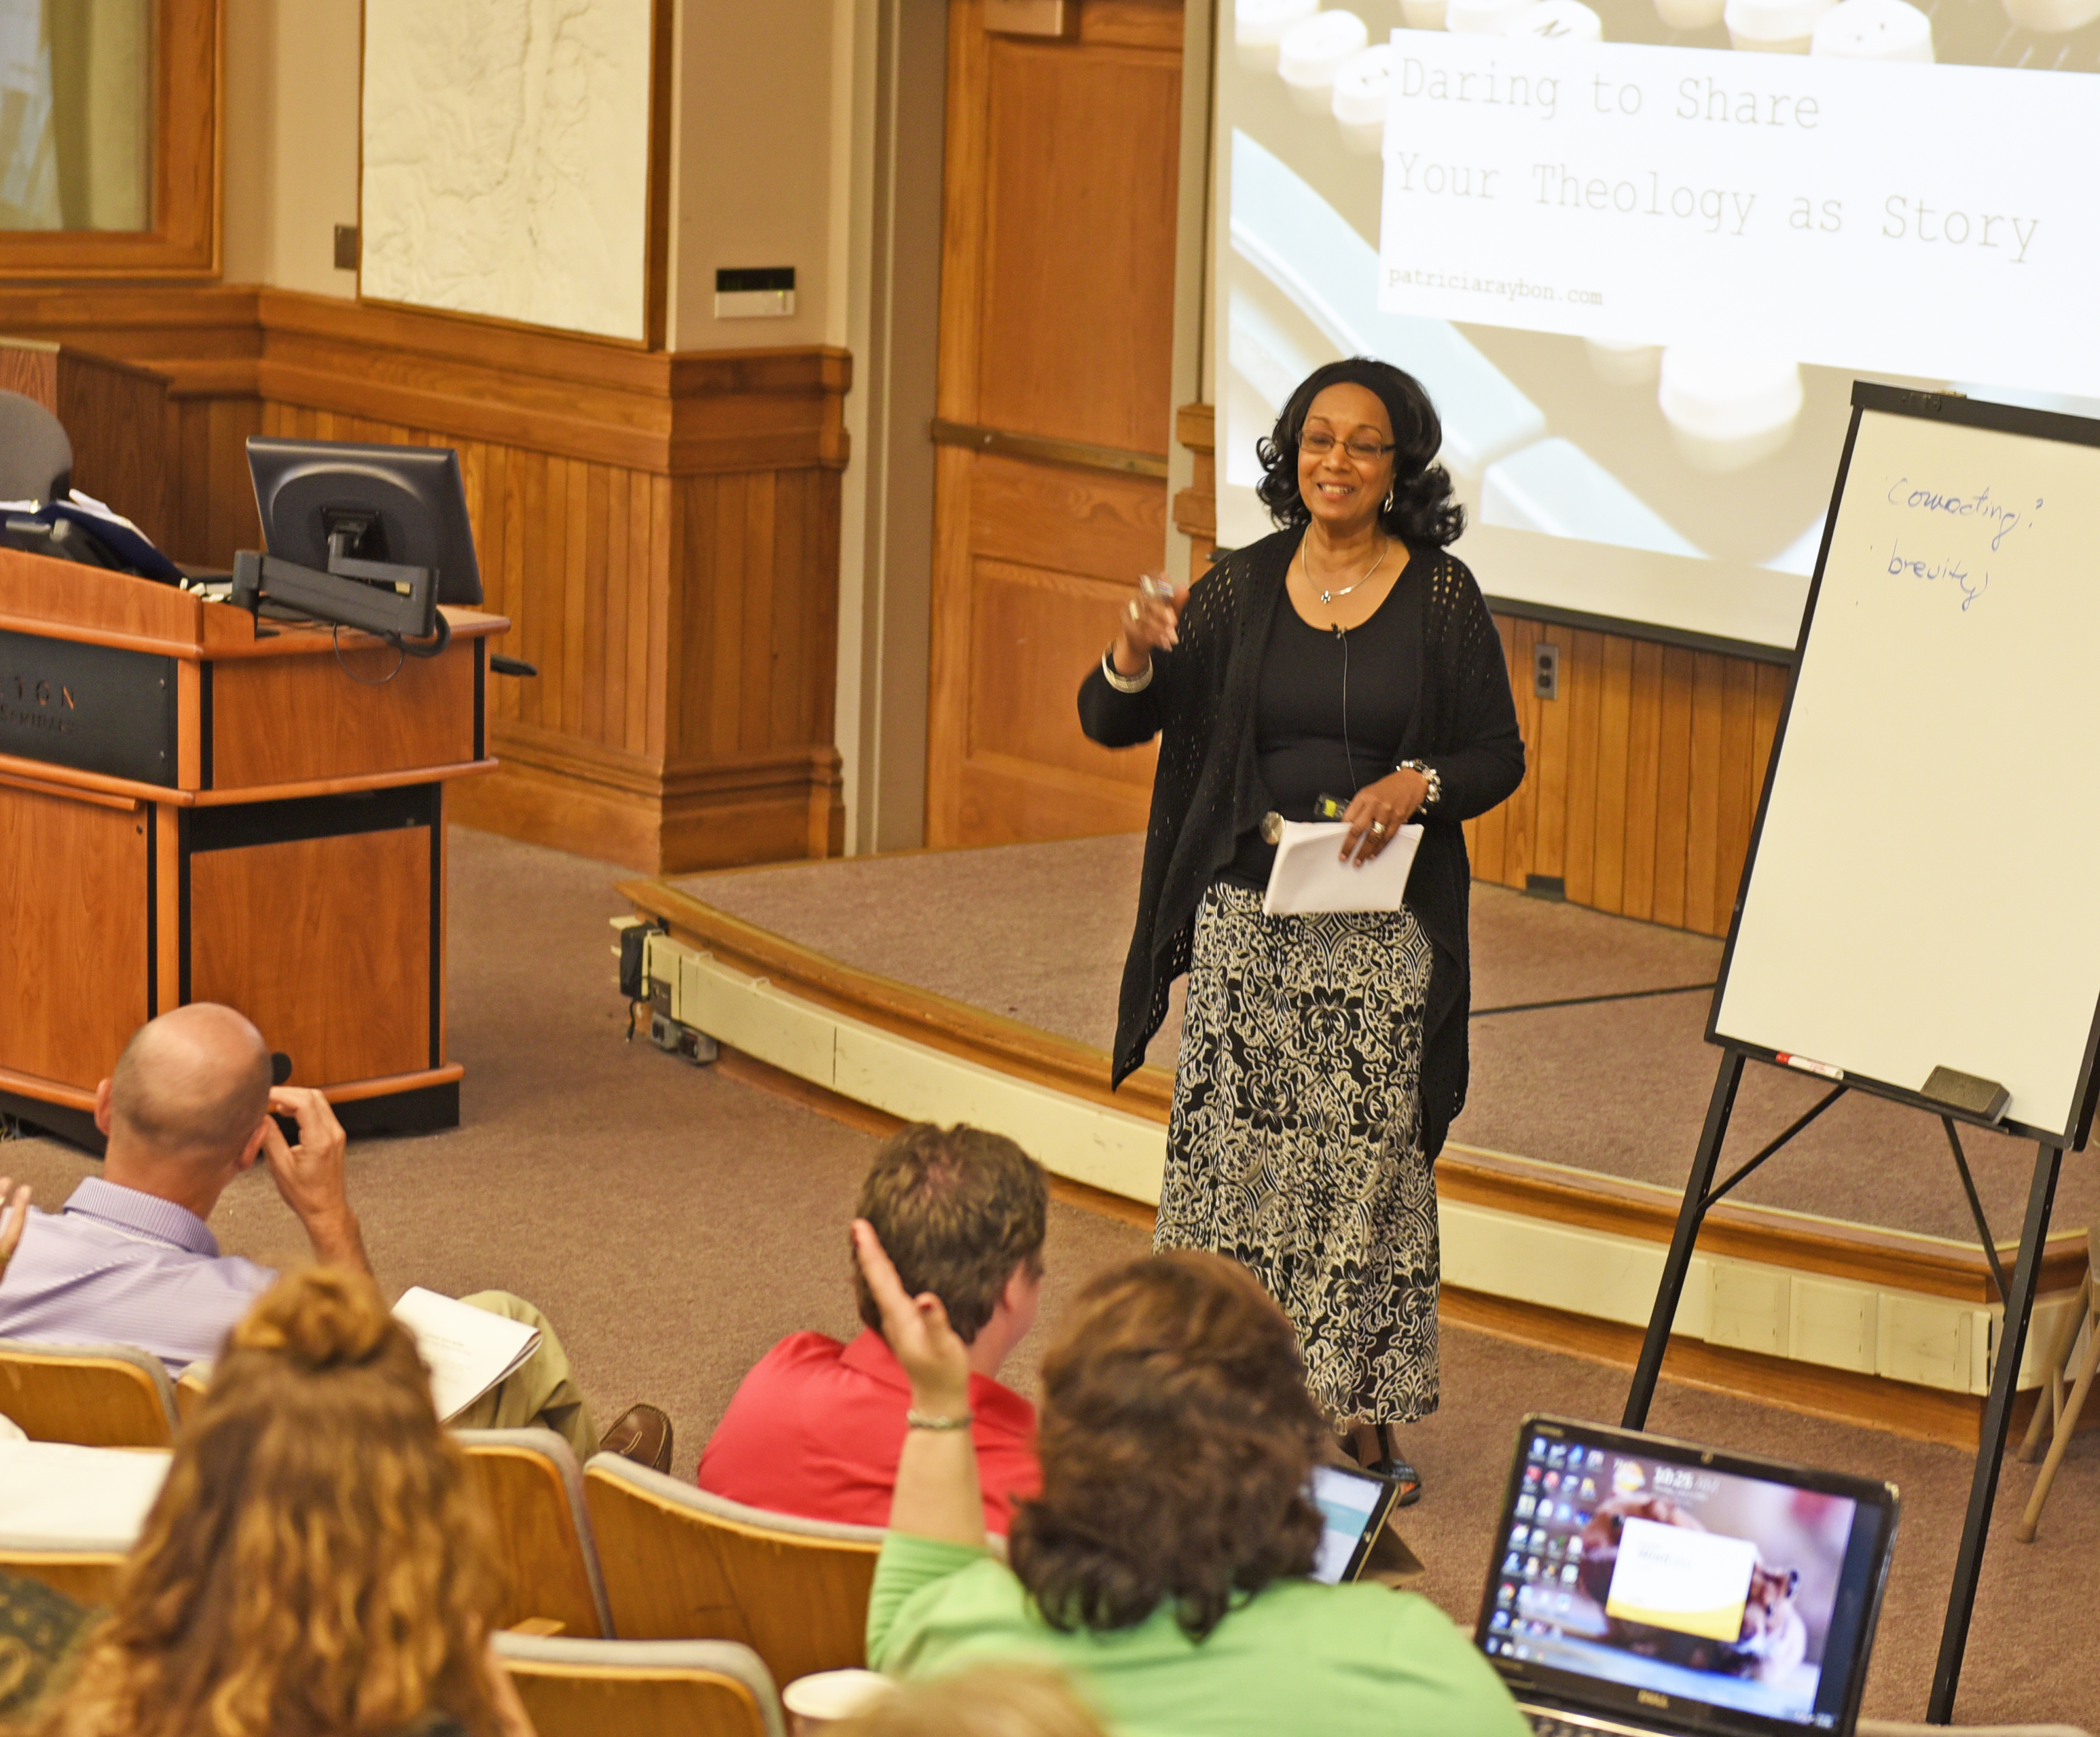 workshops for groups patricia raybon teaching essay writing at princeton theological seminary s inaugural frederick beuchner writing workshop